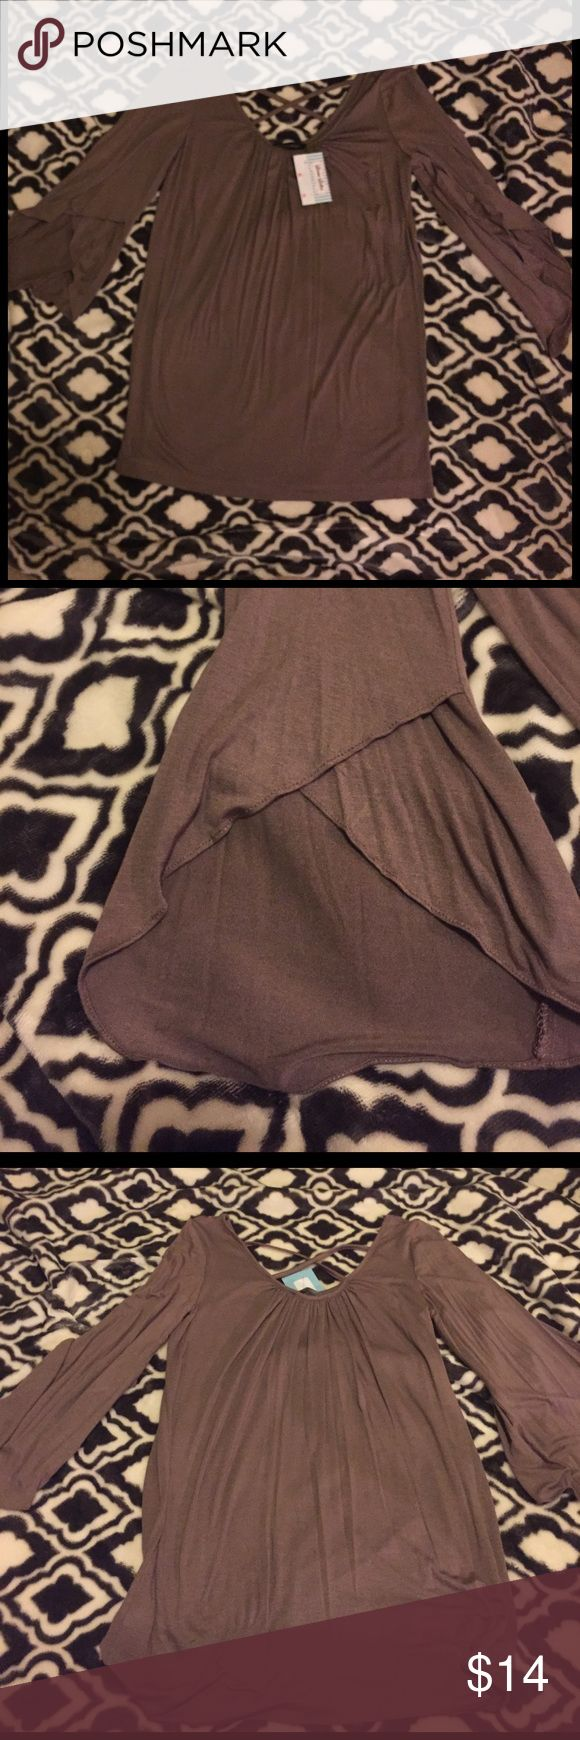 🔥NWT🔥 X-back Tunic Top Brand new with tags x-back brownish-gray tunic top from the brand Hourglass Lilly. The sleeves are bell shaped with crisscross, see picture 2 for detail. Size small. This is a perfect tunic for leggings to be comfy and cute!! Smoke free home! 🚫🚬 Hourglass Lilly Tops Tunics